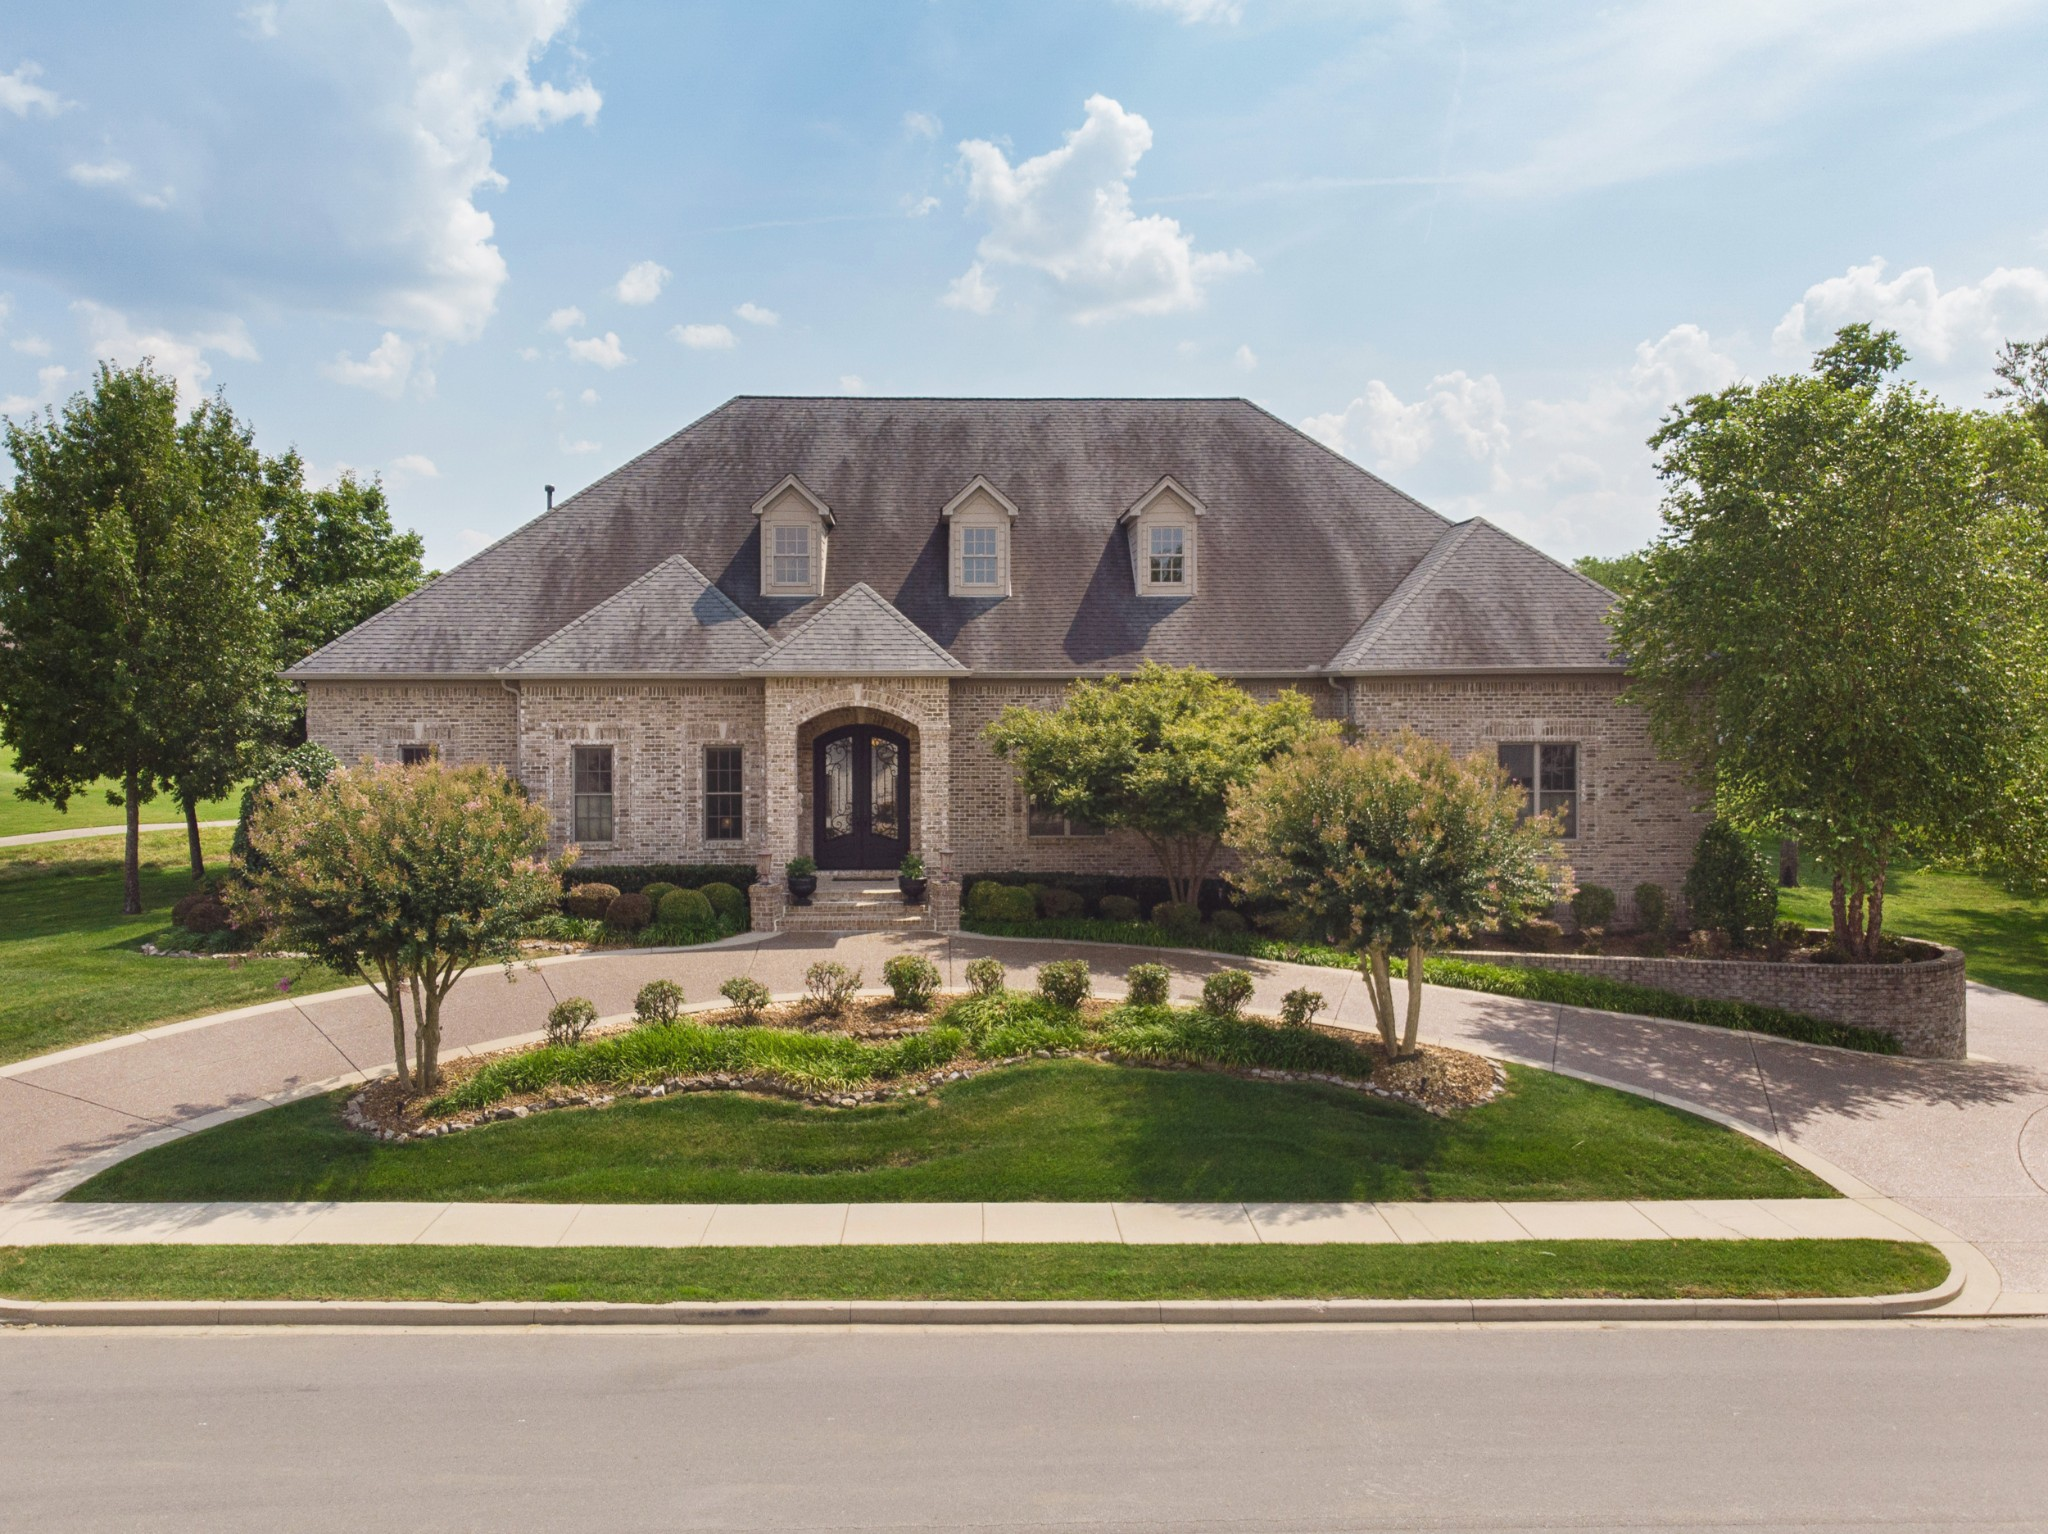 $1,025,000 - 3Br/4Ba -  for Sale in Foxland Ph 1 Sec 2, Gallatin